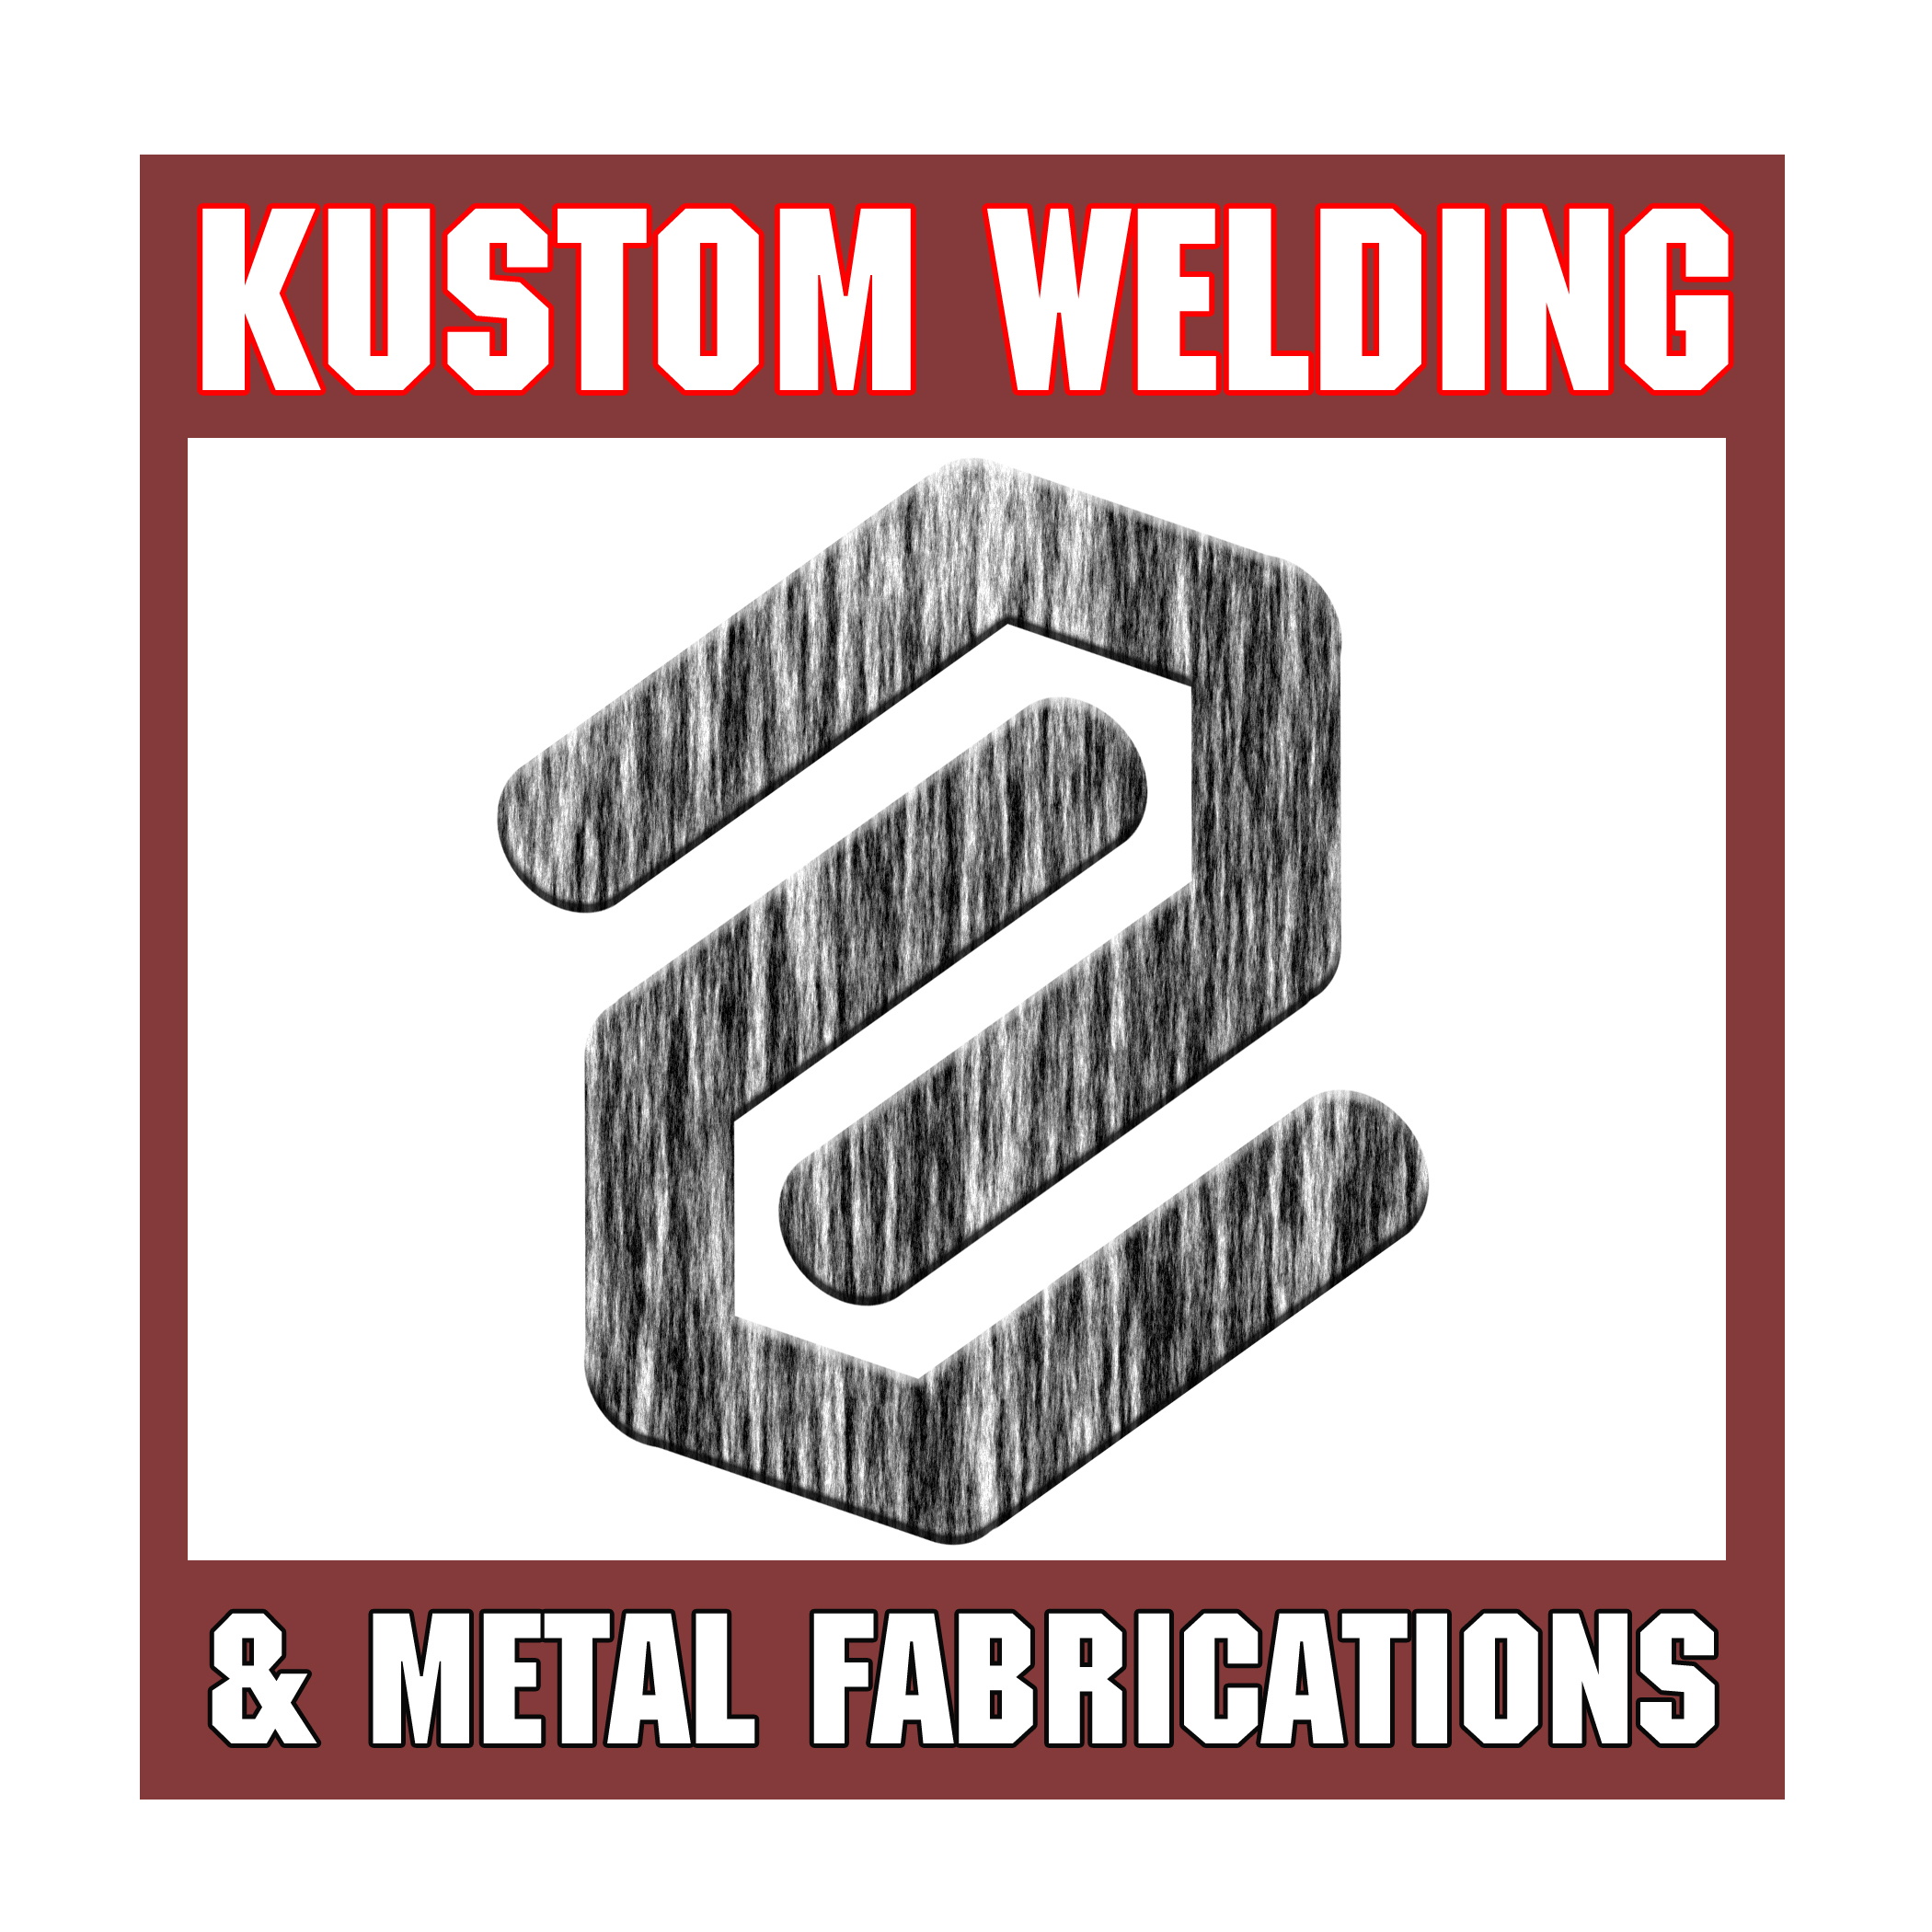 Logo Design by Kitz Malinao - Entry No. 14 in the Logo Design Contest Imaginative Logo Design for DC KUSTOM WELDING & METAL FABRICATION.